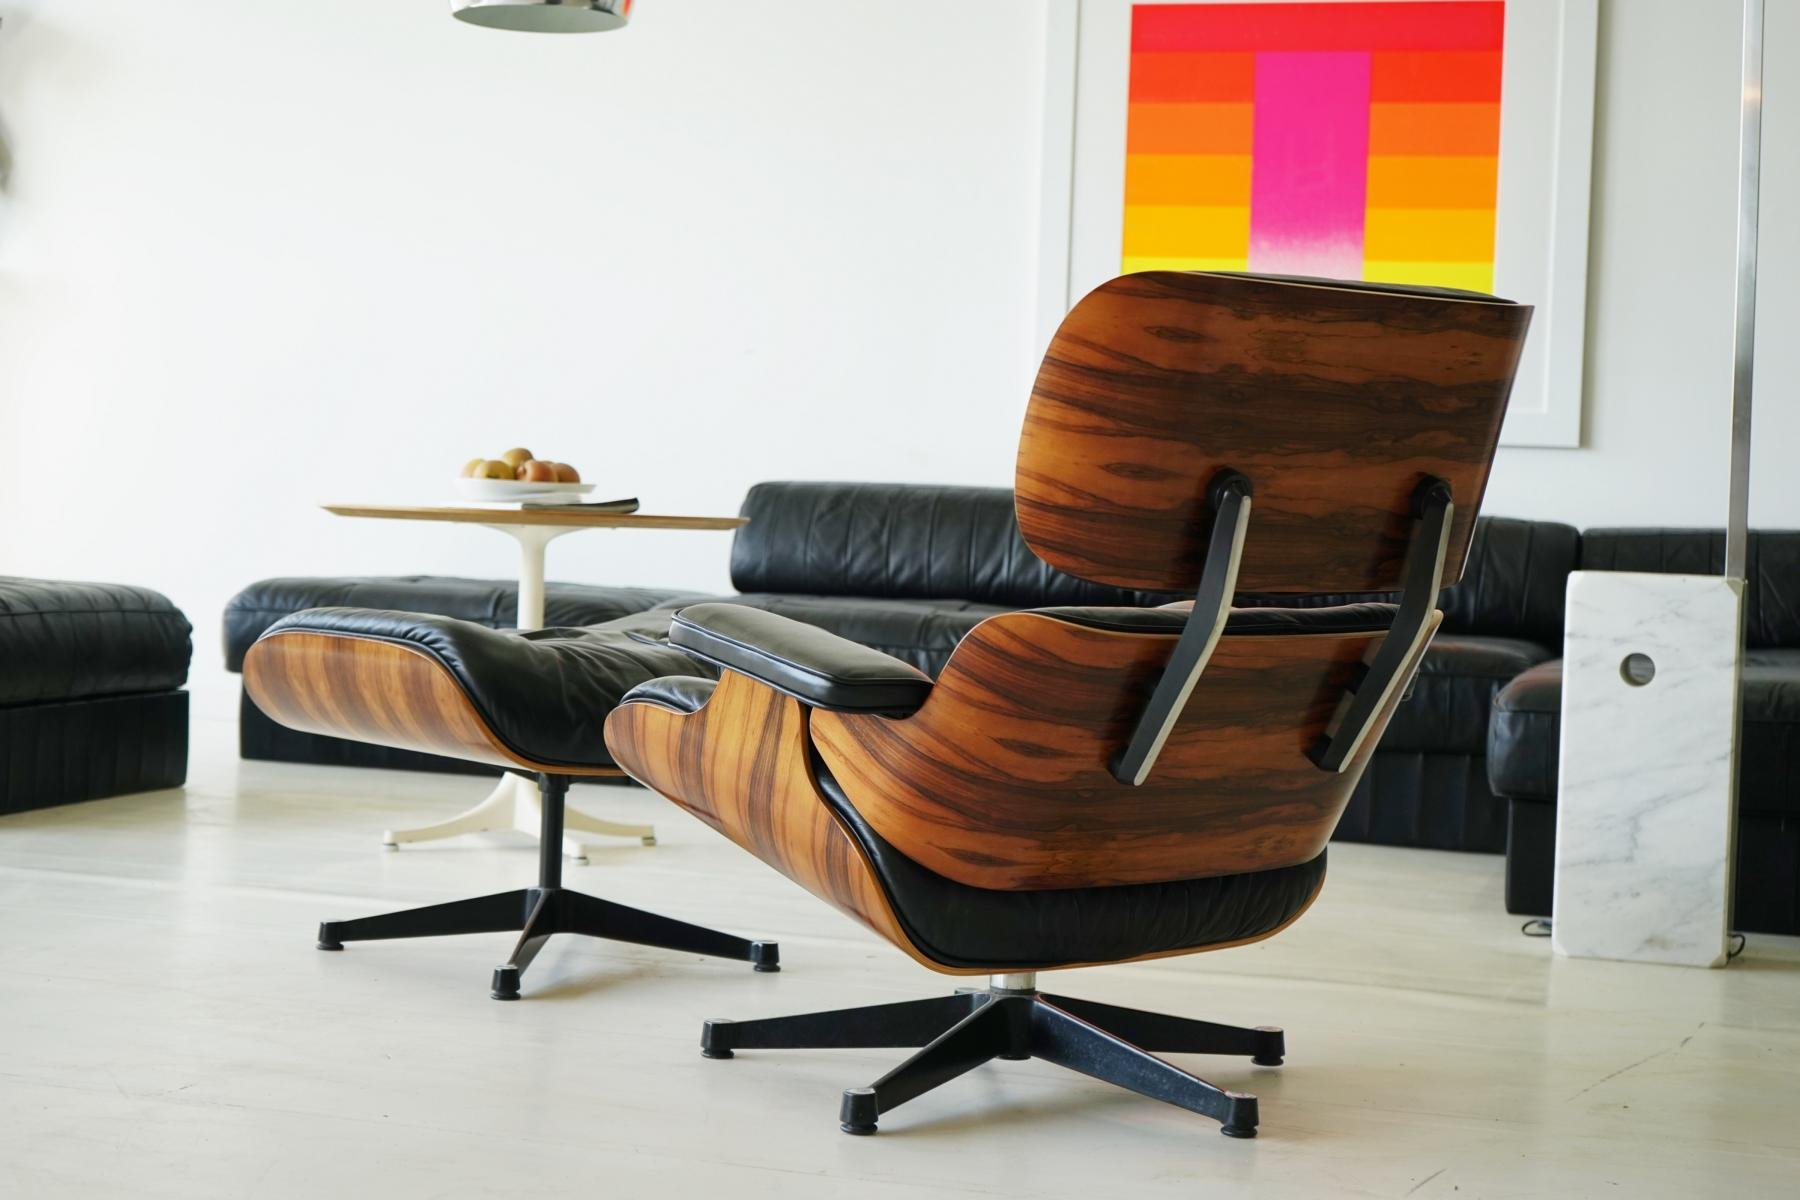 Vintage Lounge Chair with Ottoman by Charles & Ray Eames for Vitra for sa